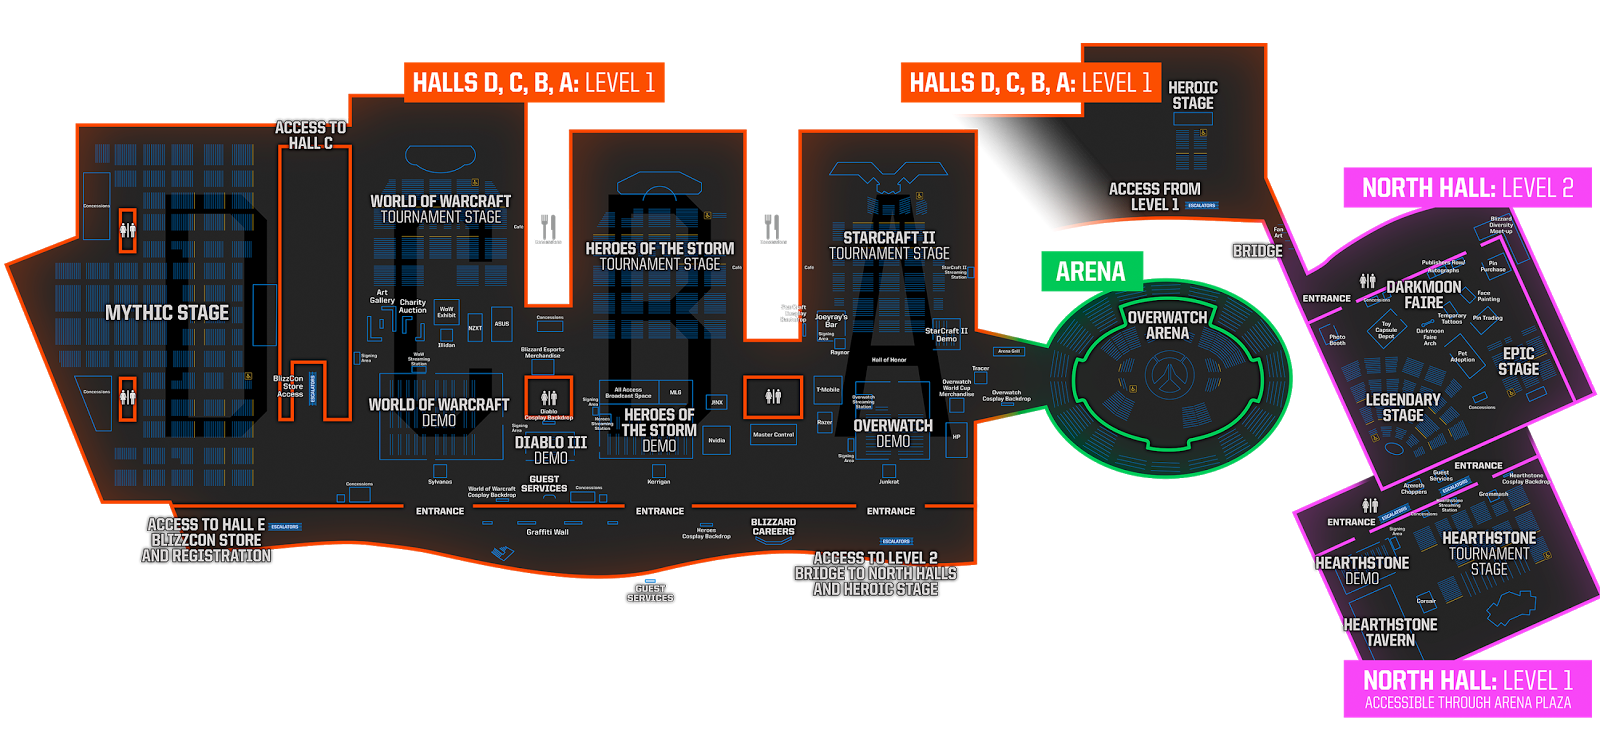 blizzcon 2017 map plus the joke from 2016 and 2015